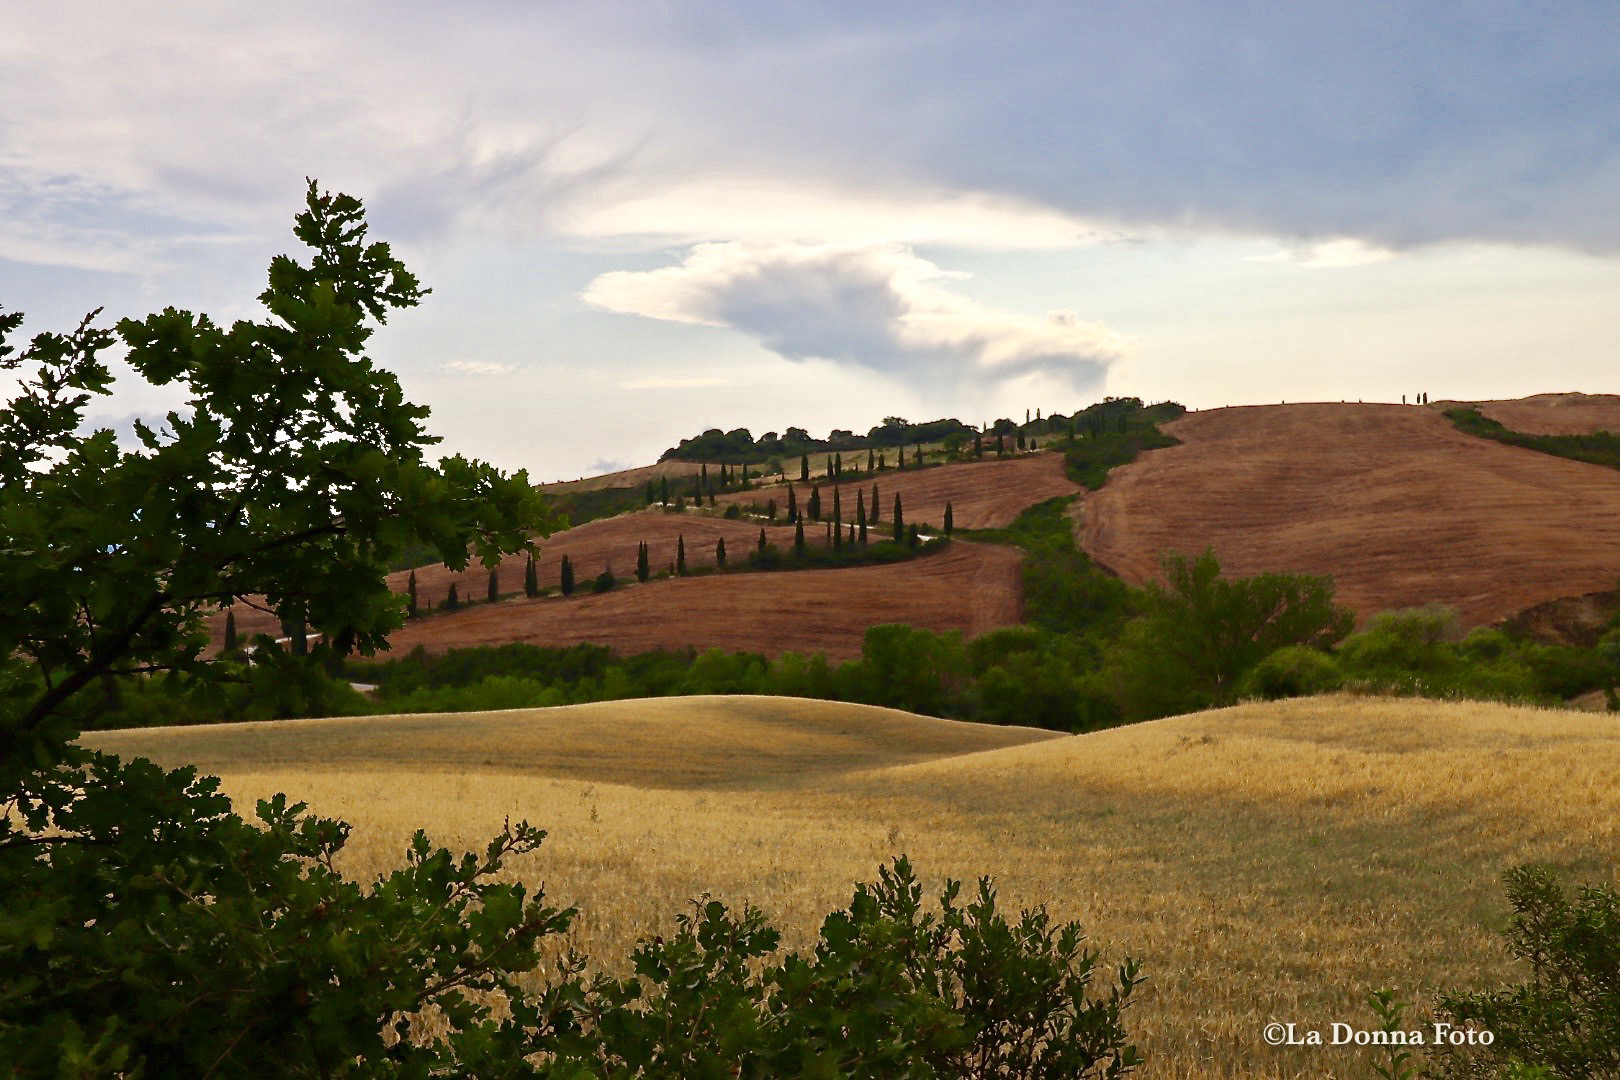 Val d'Orca - Italian Landscape Photography - La Donna Foto Houston, TX 77007